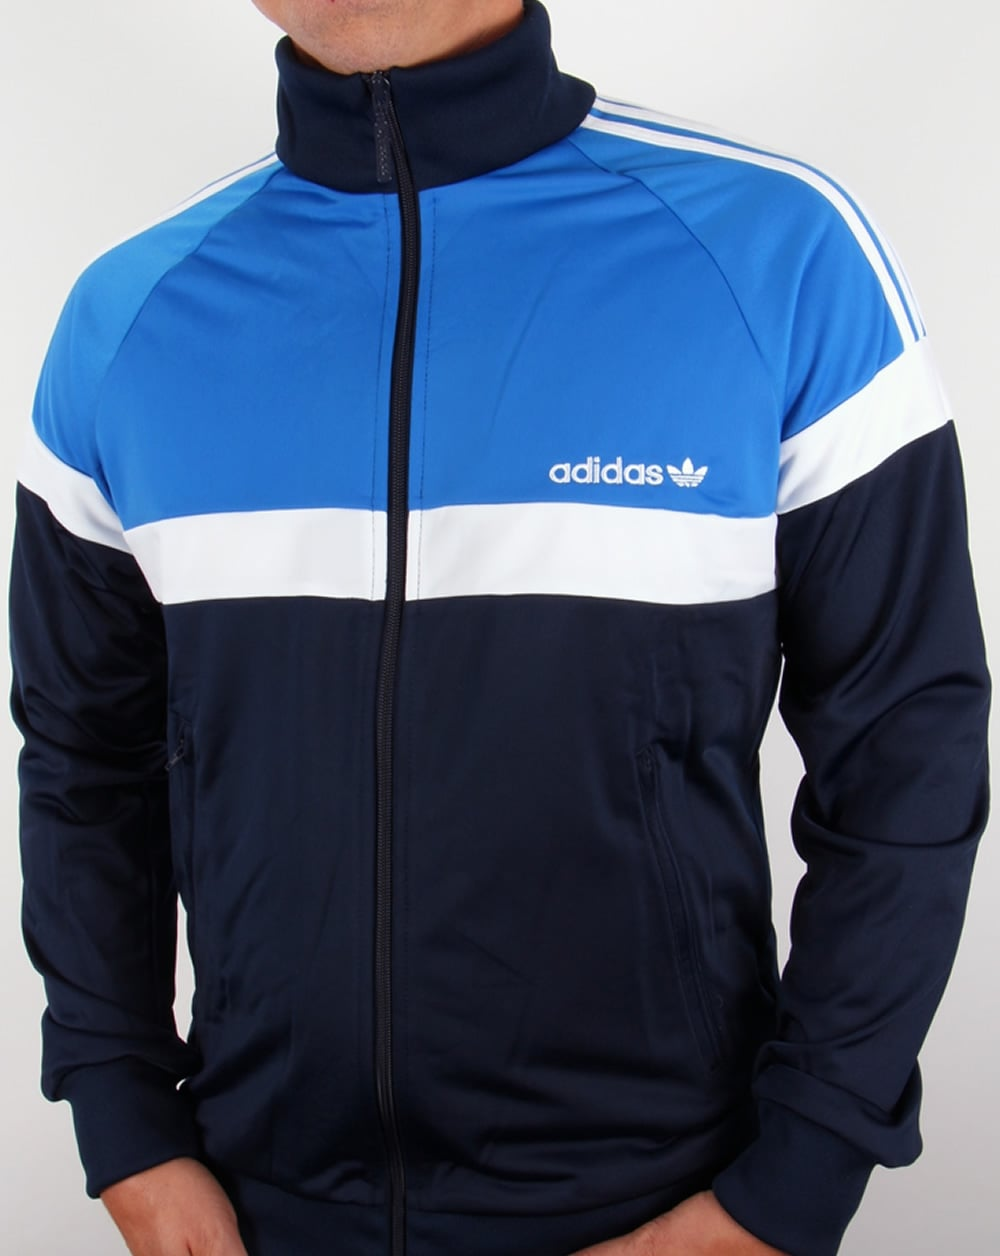 Adidas Originals Itasca Track Top NavyRoyal Blue